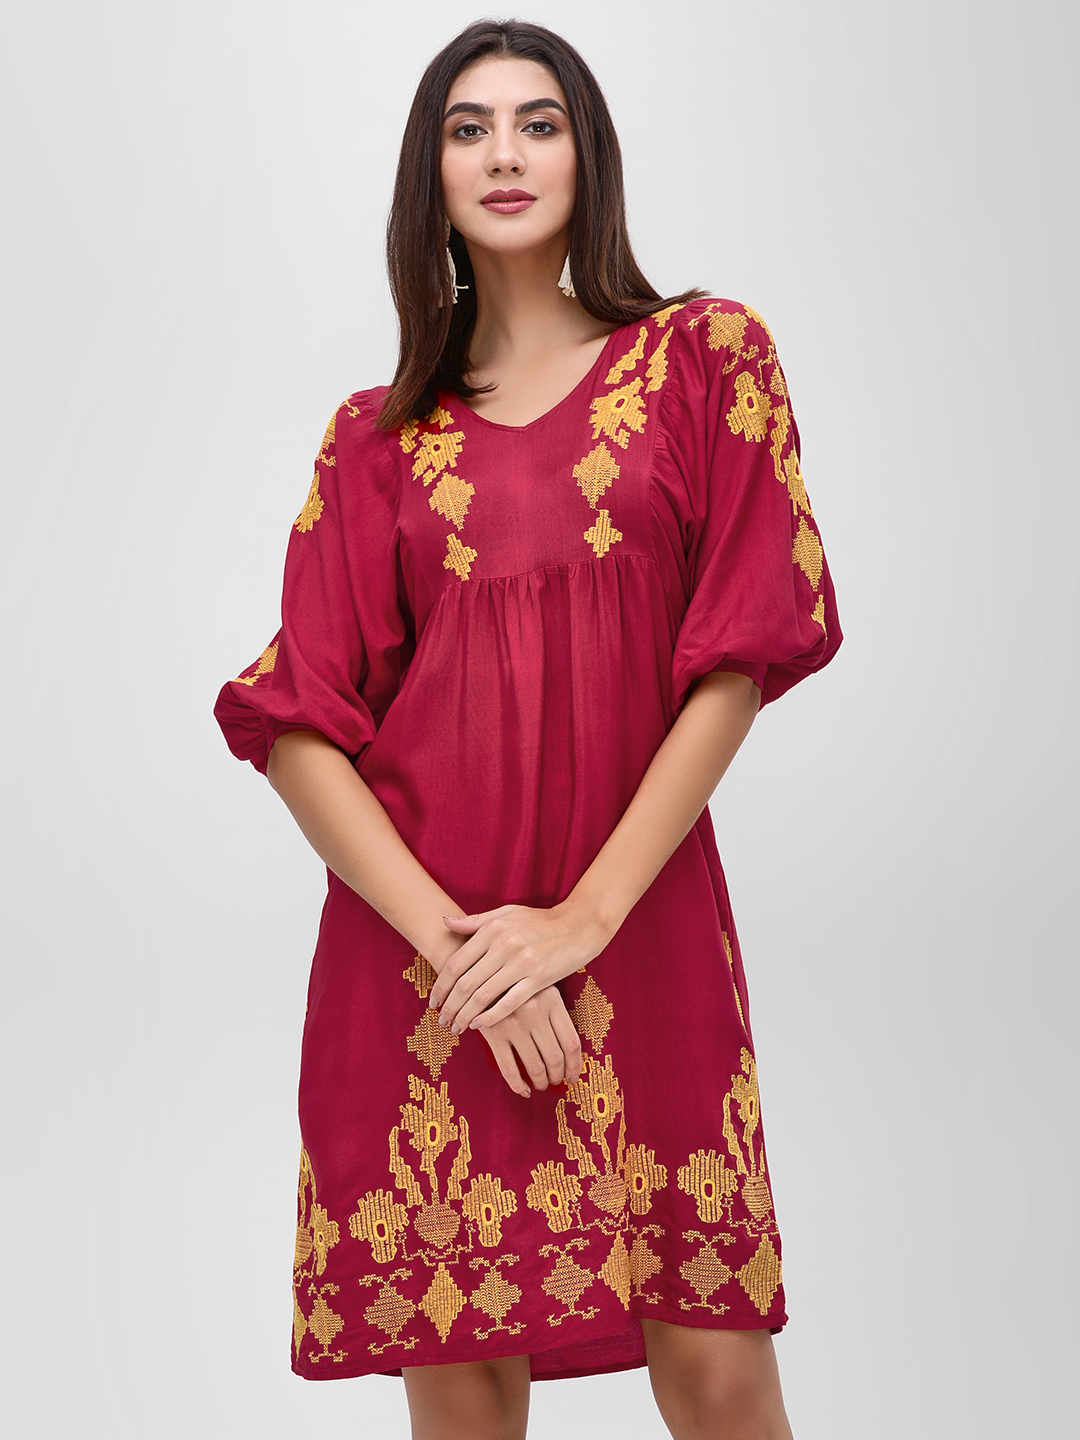 Rena Love Red Shift Dress With Embroidery 1